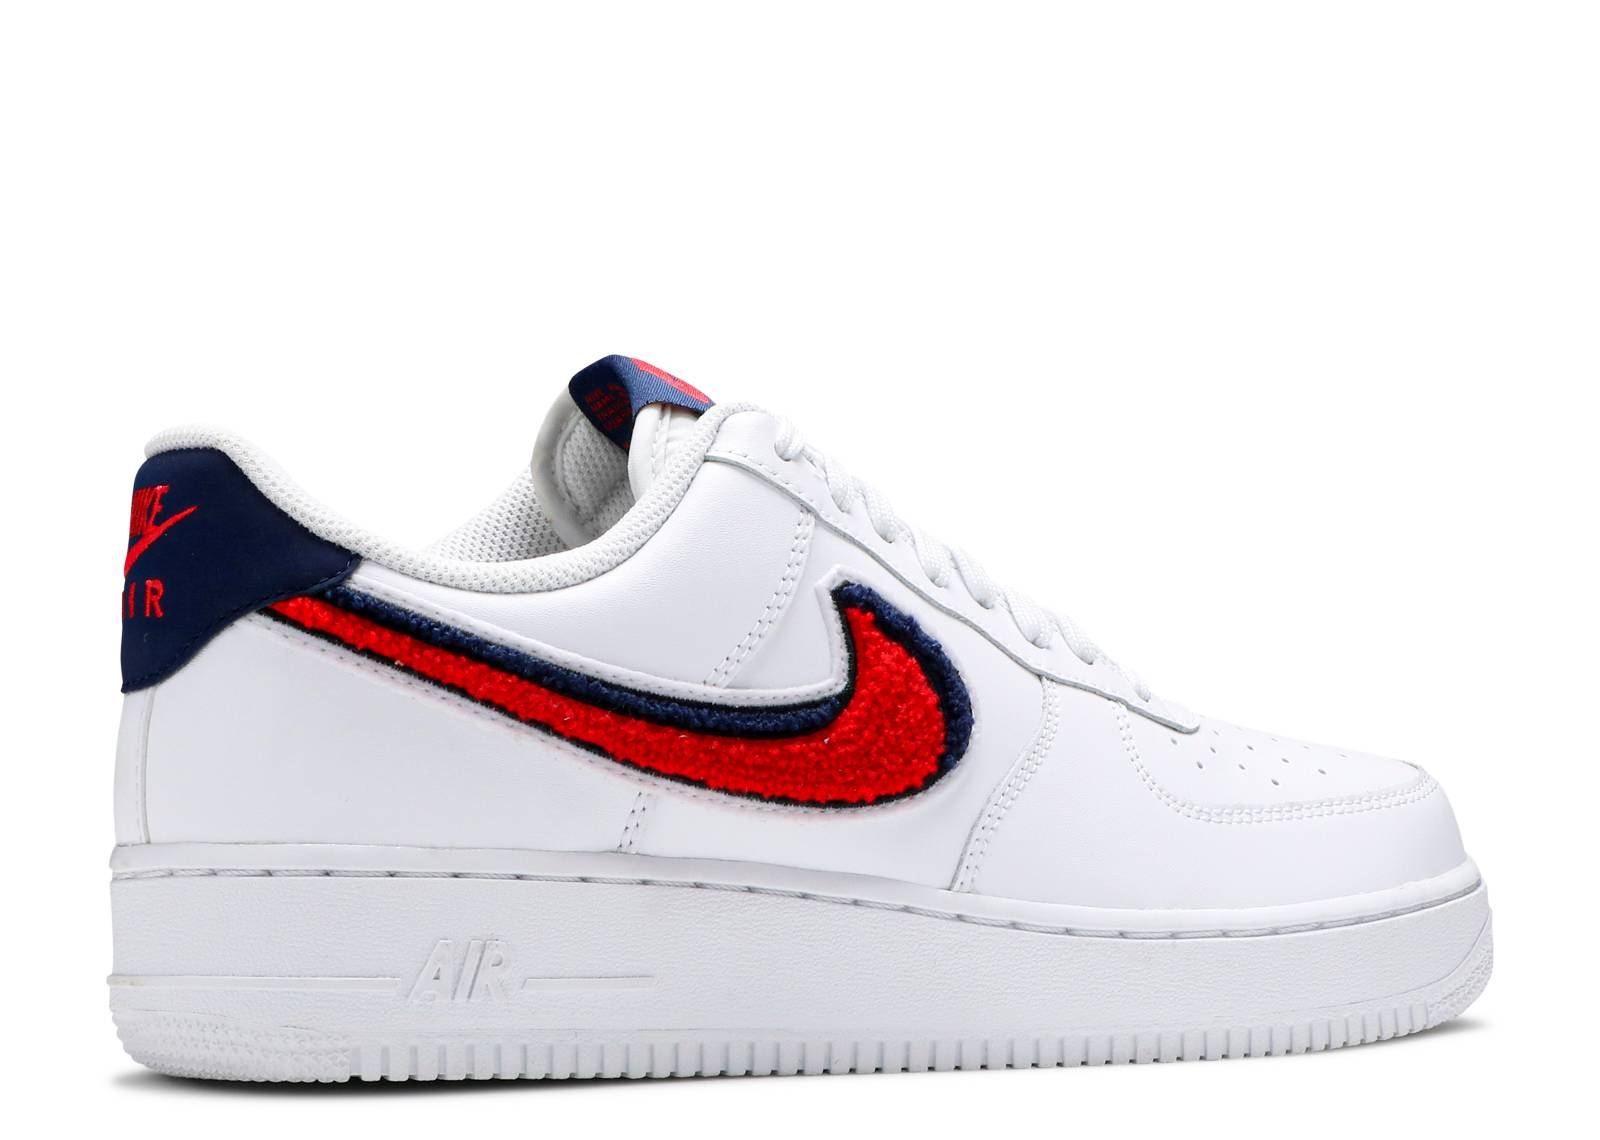 check out a3341 5b9e9 ... aliexpress air force 1 07 lv8 chenille swoosh nike 823511 106 white  university red blue void